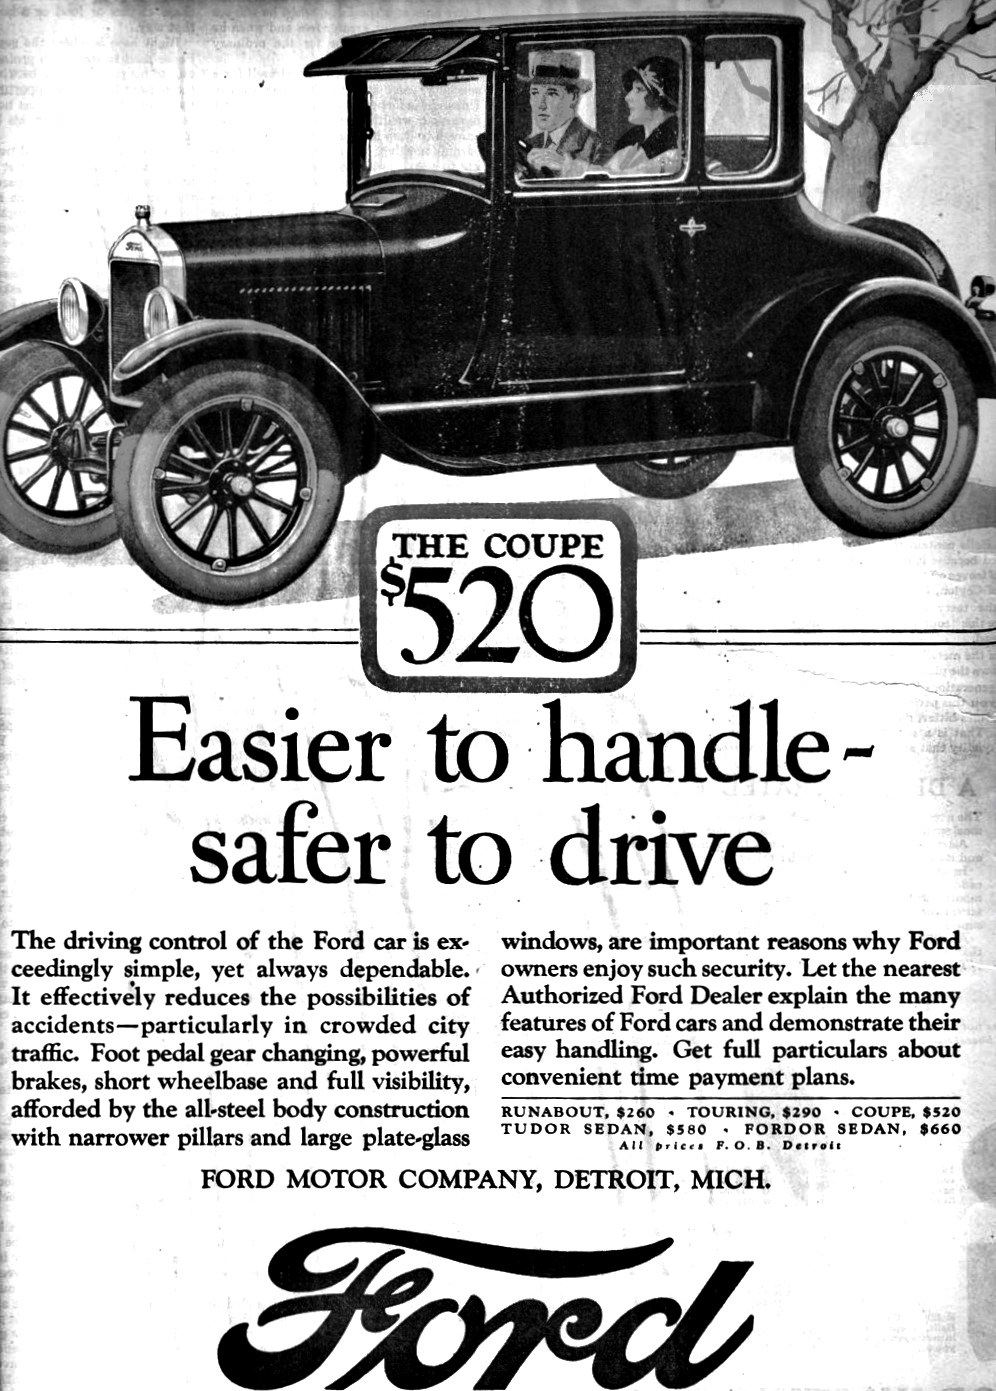 effie knight and the 1926 ford coupe installment plan ray city history blog. Black Bedroom Furniture Sets. Home Design Ideas